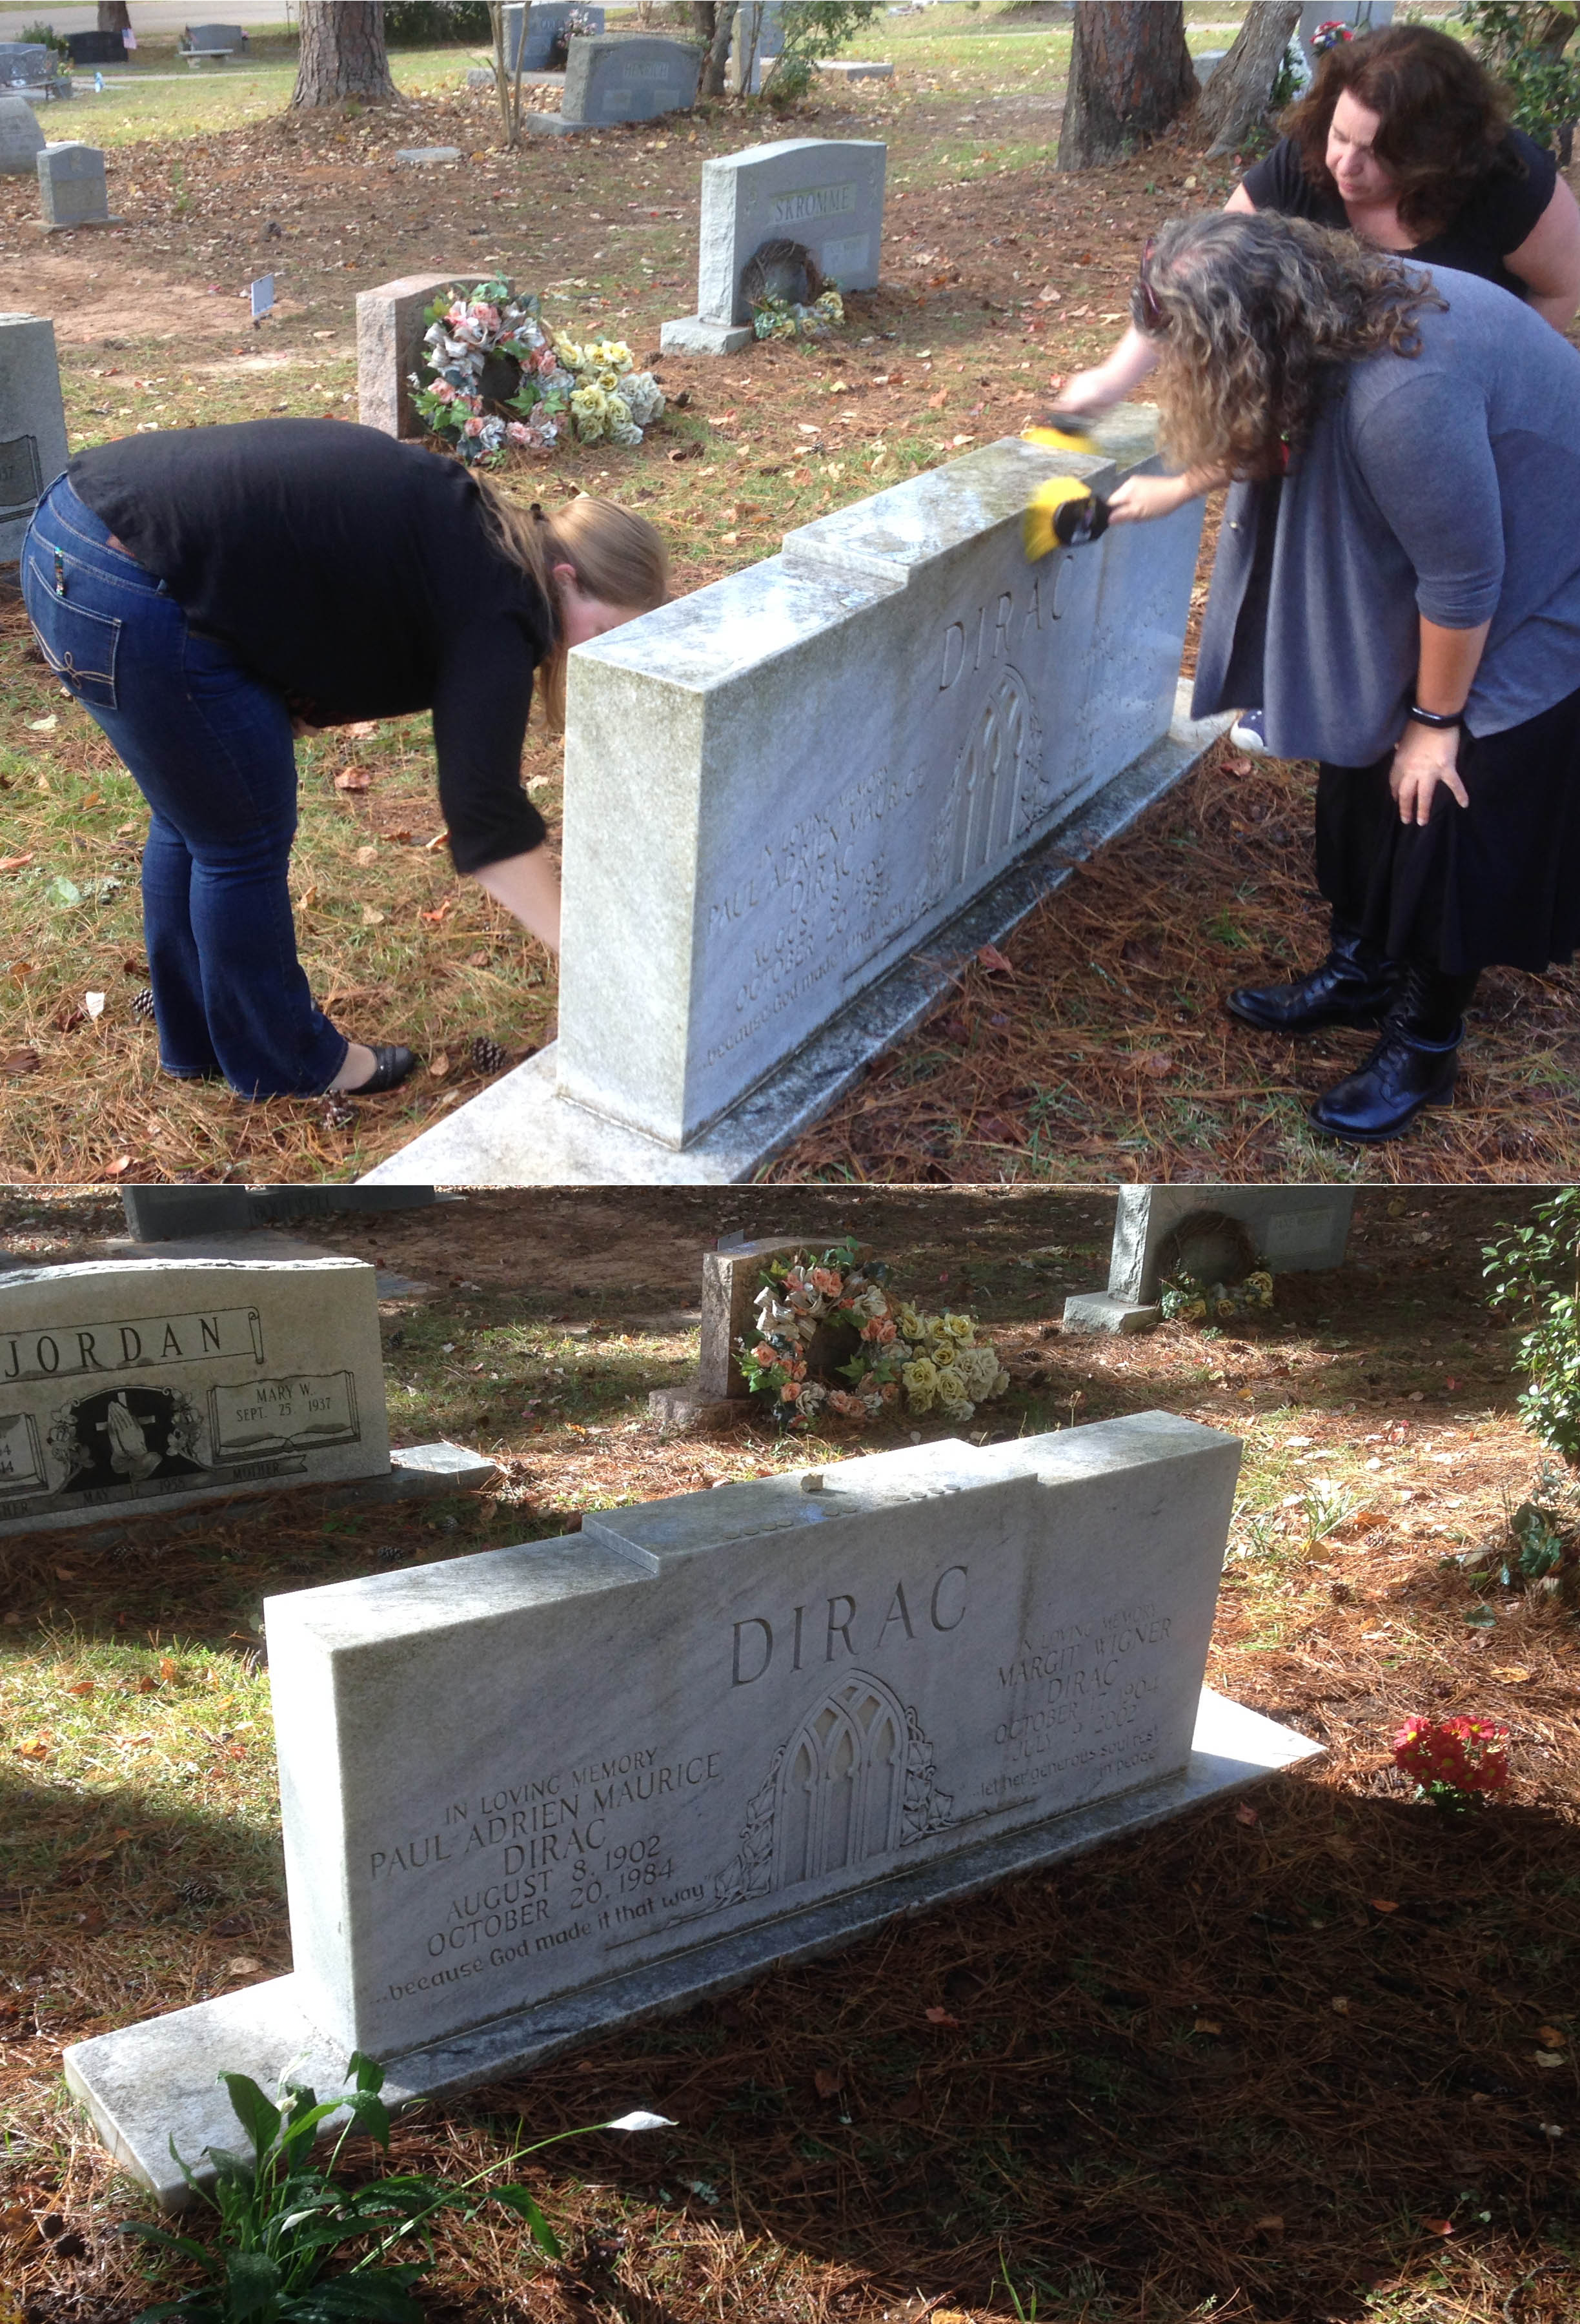 Top: Krystal Thomas, Katie McCormick, and Susan Contente remove grime from the Dirac headstone. Below: A clean headstone with fresh flowers planted on either side.